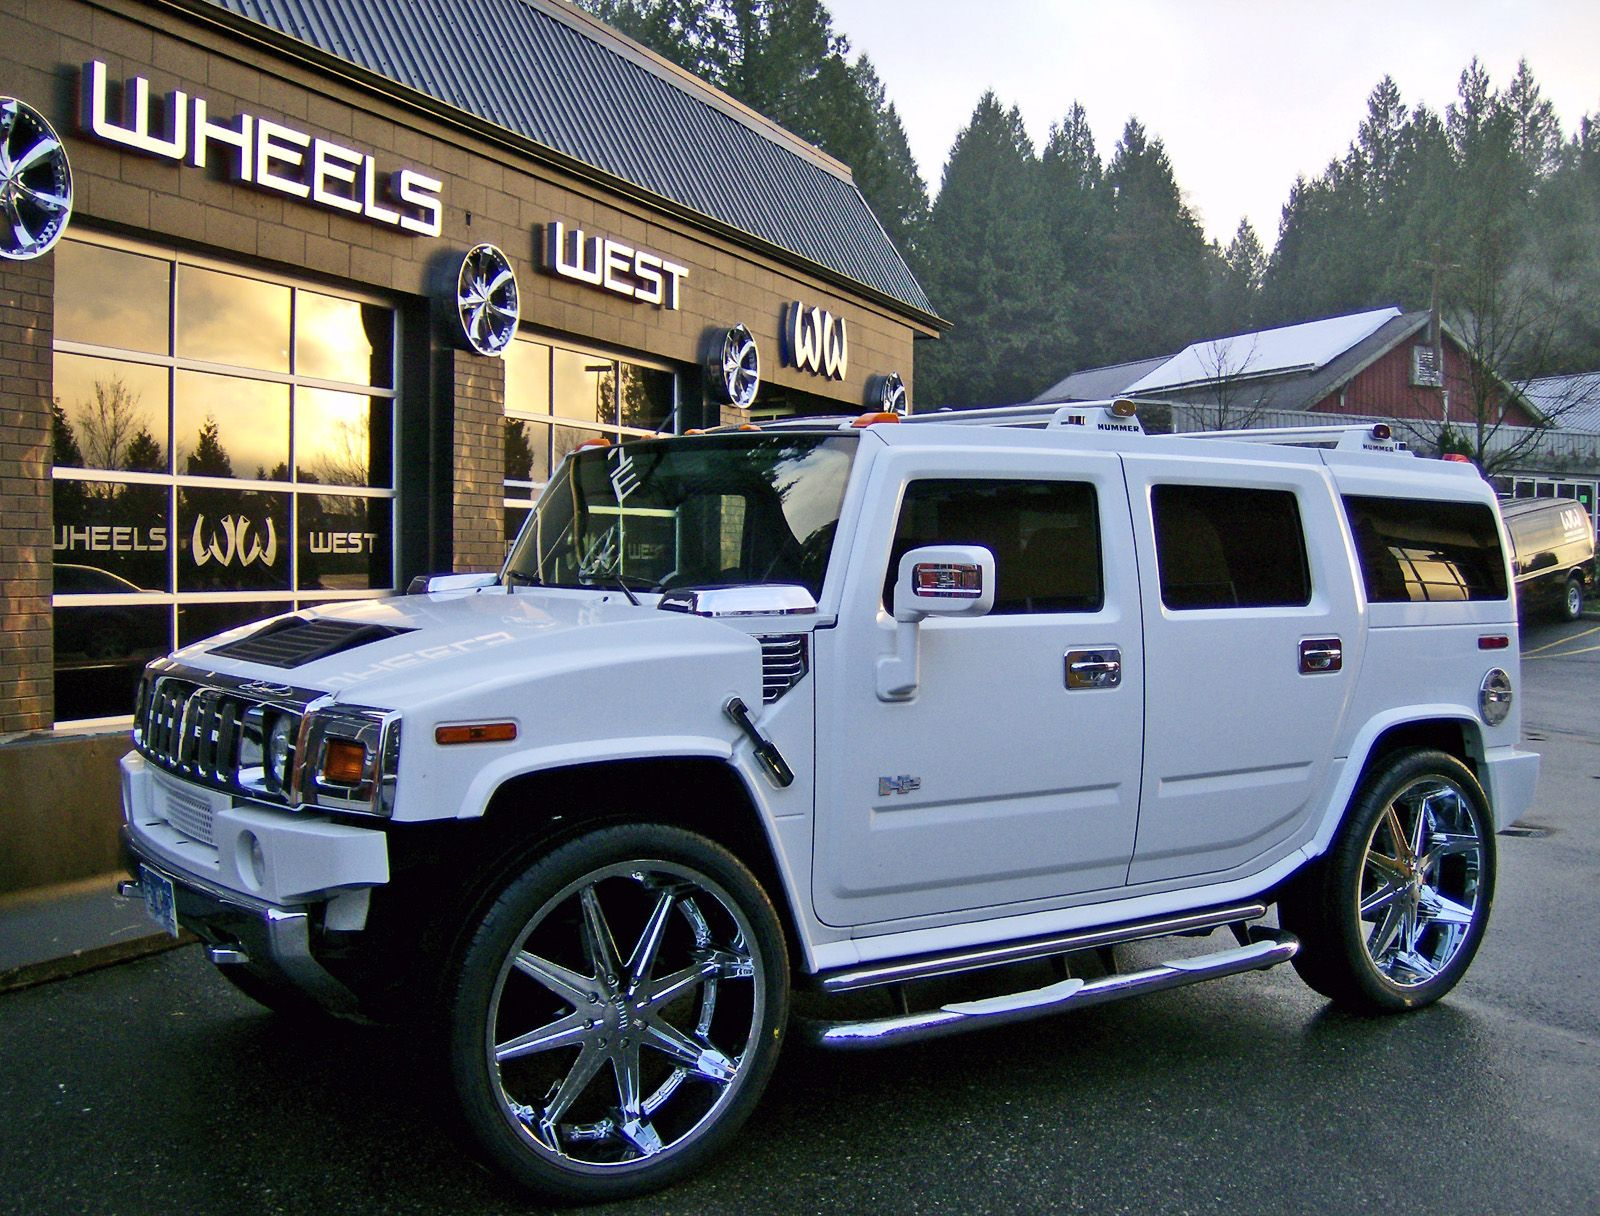 2017 Hummer Sut Is The Featured Model Redesign Image Added In Car Pictures Category By Author On Apr